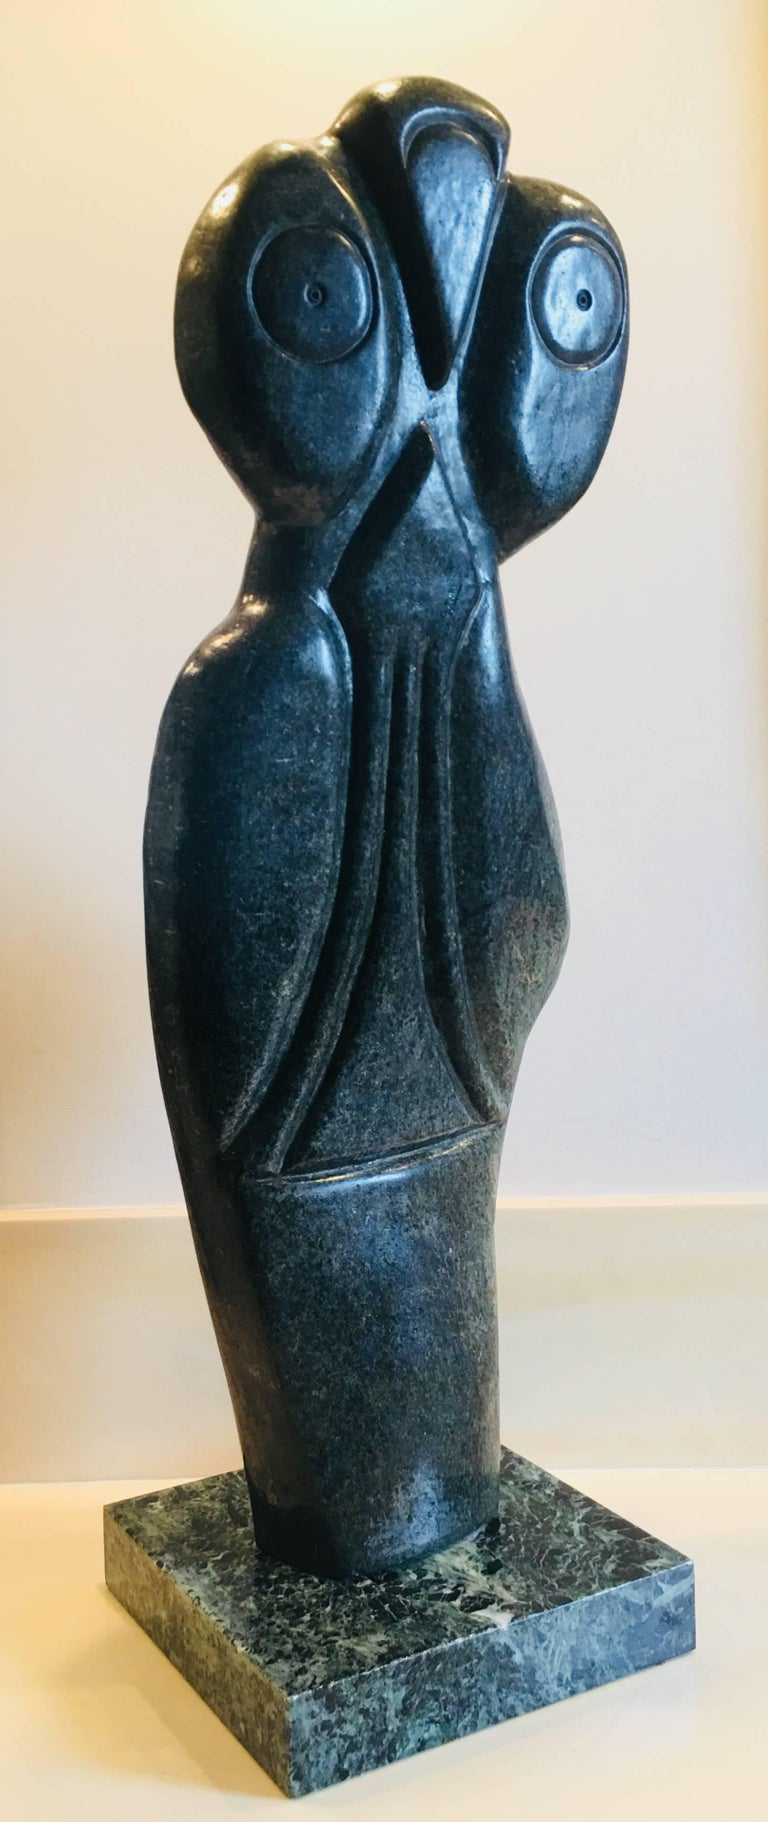 Bauden Khoreay's, carved Stone Sculpture of Owl, Malawi, Africa, circa 1970 For Sale 10